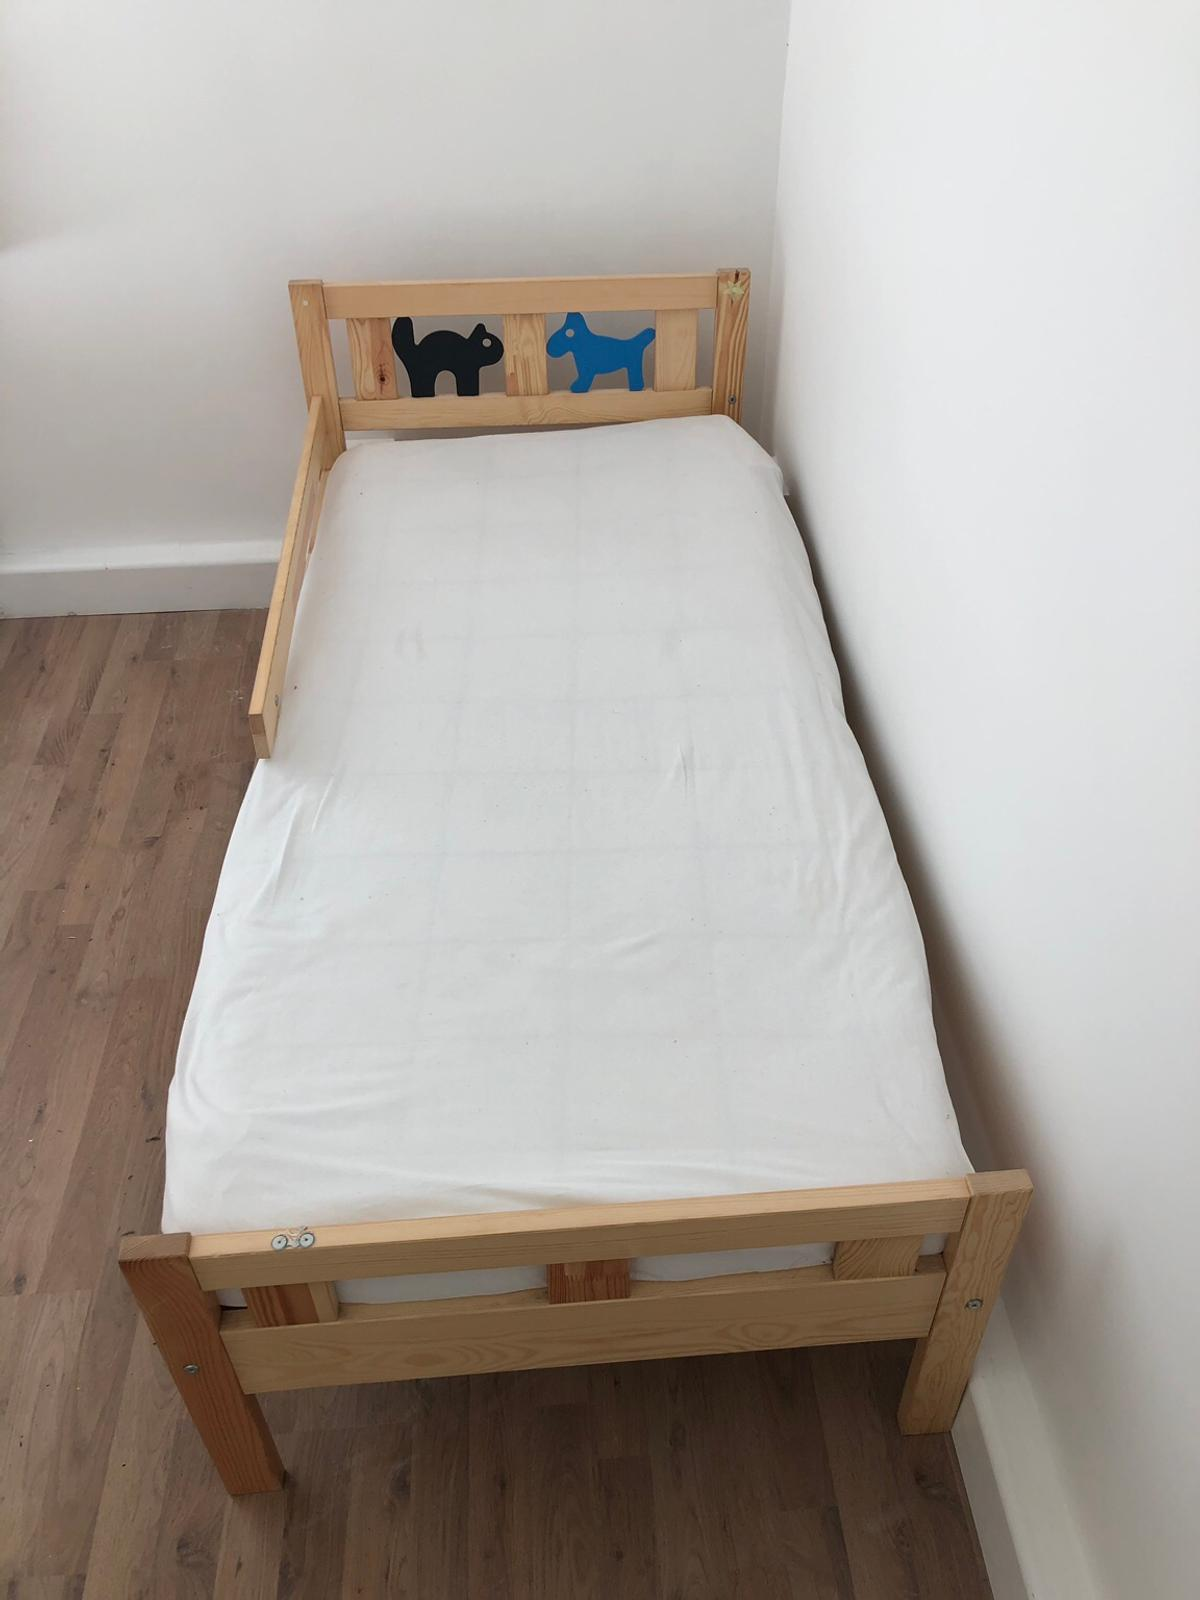 new product 05a9d ad71c IKEA Kritter Toddler Bed Frame and Mattress